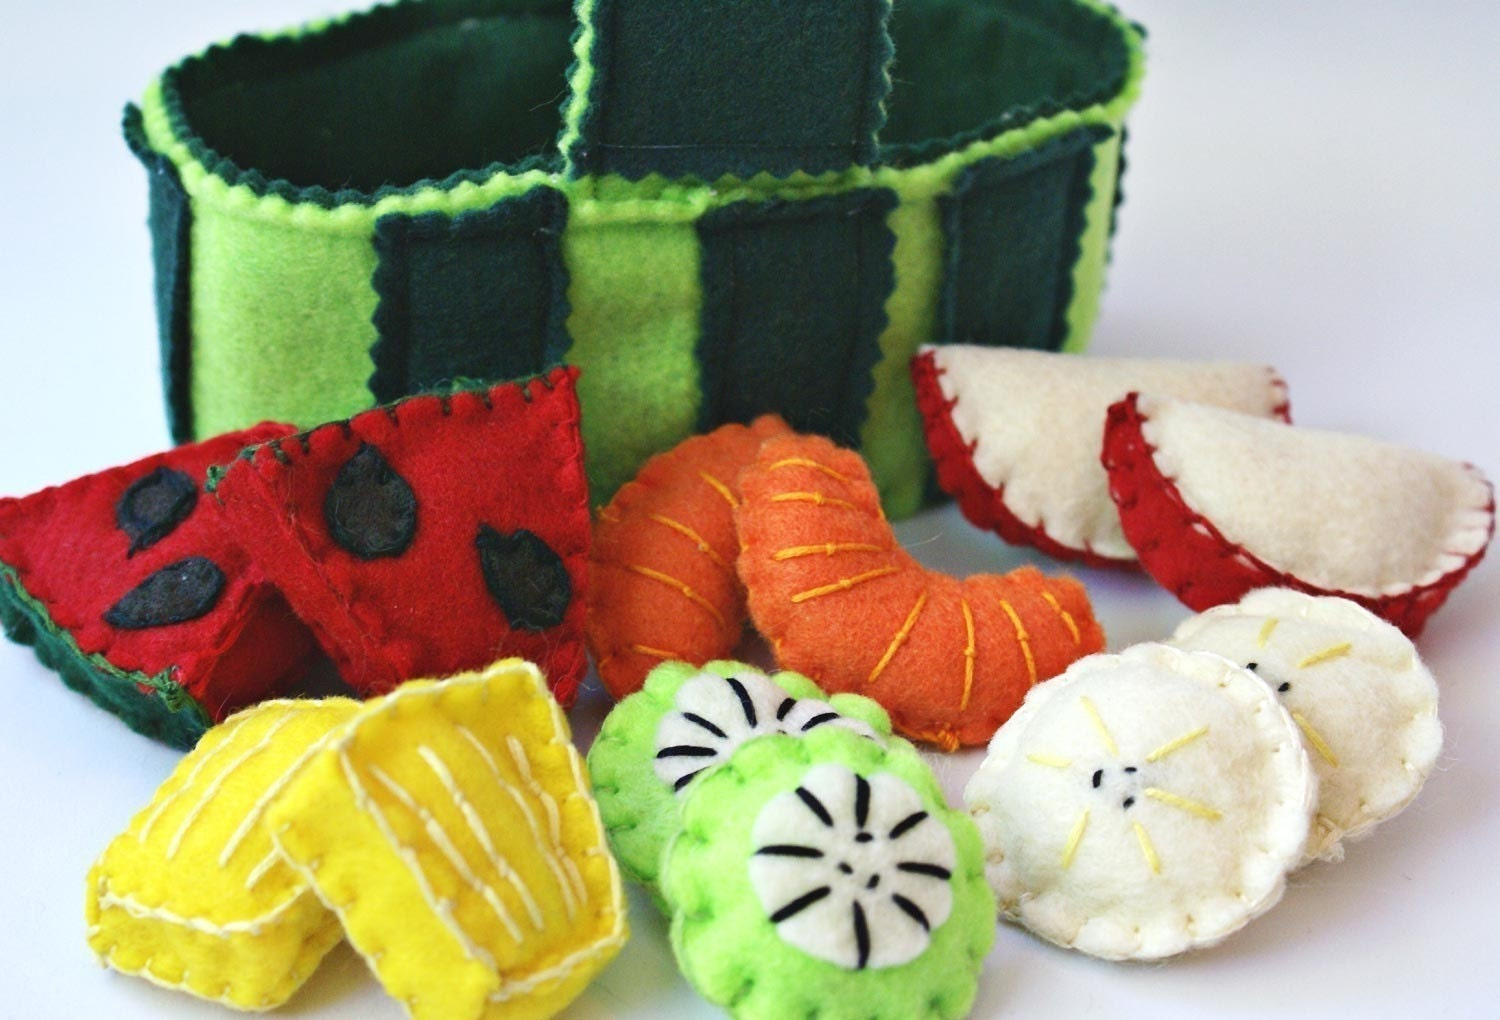 Watermelon Fruit Basket Felt Play Food Apple Orange Kiwi Pineapple Banana